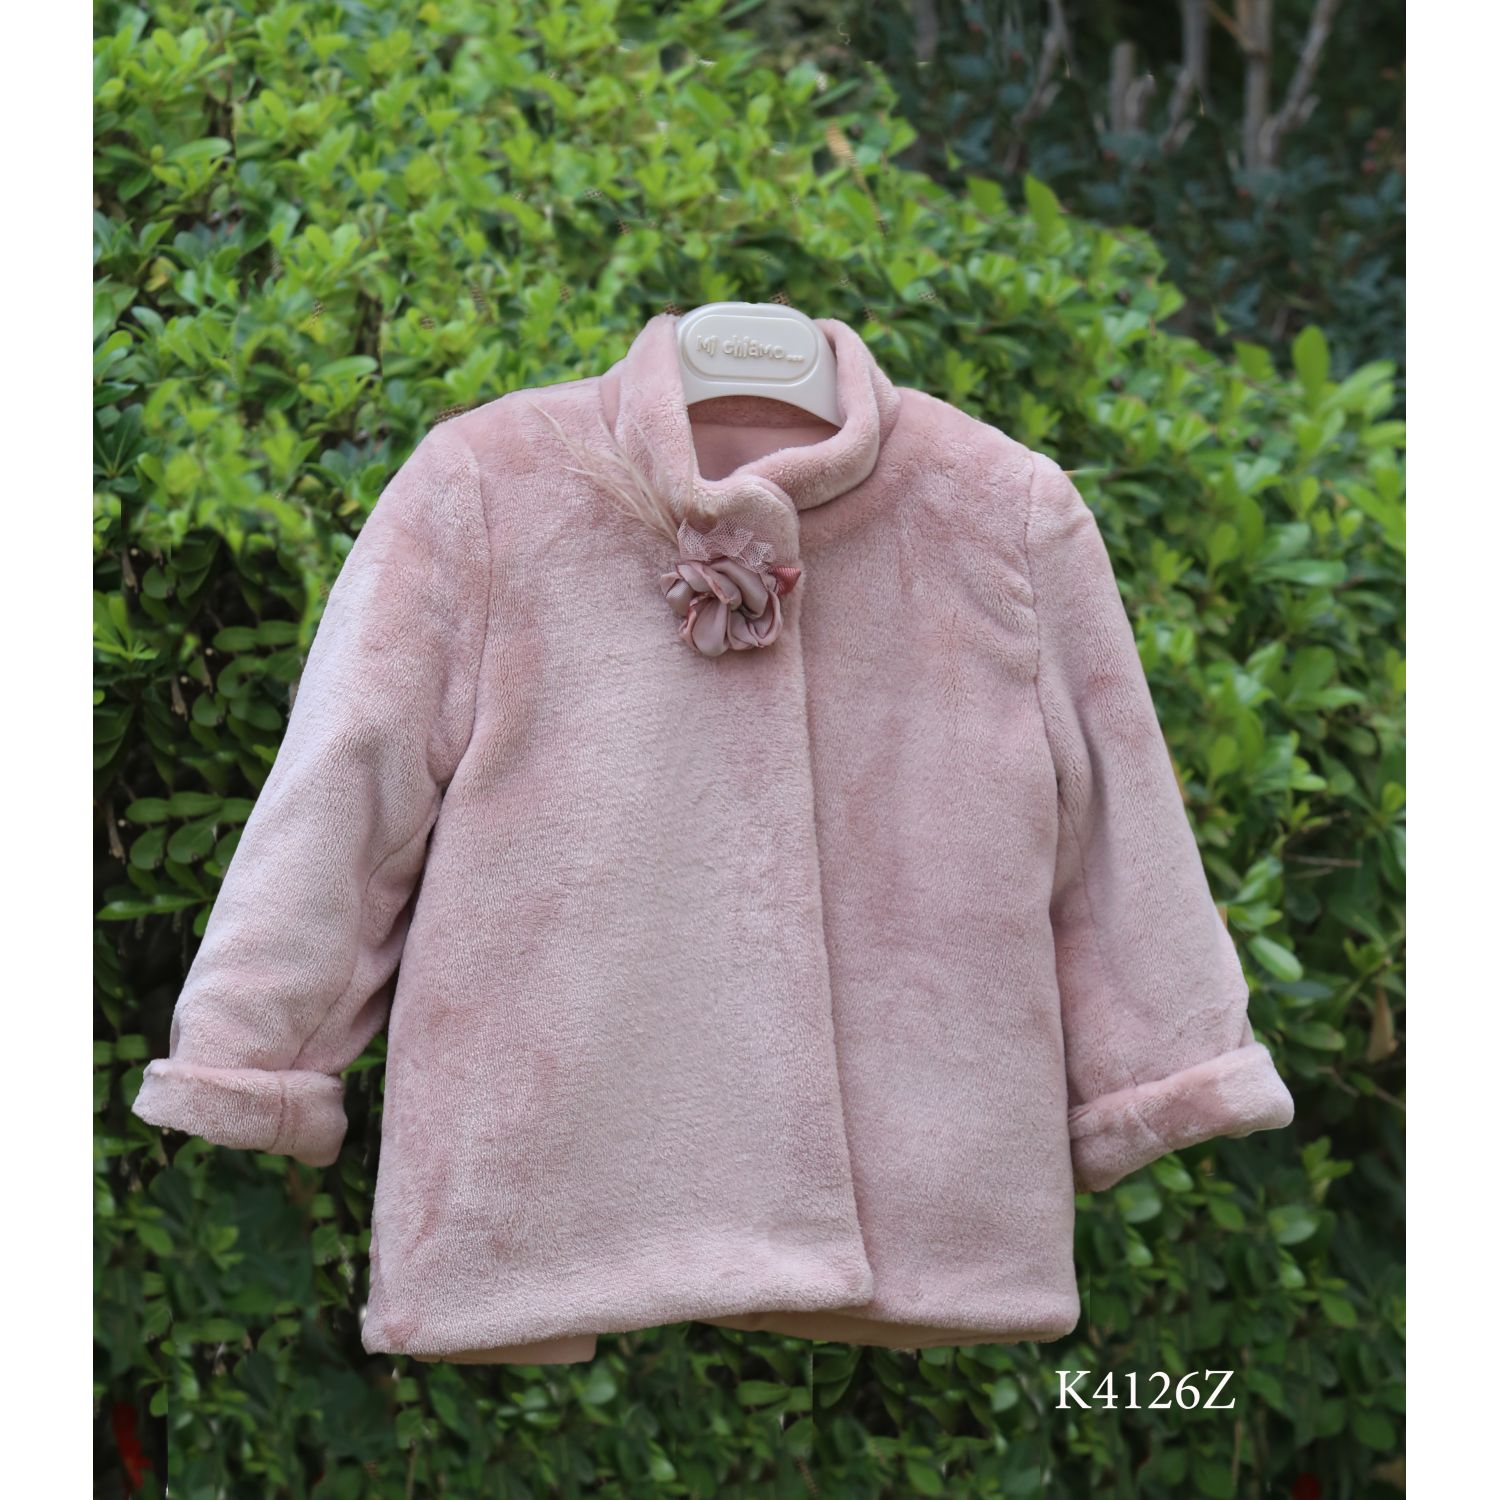 Pink christening fur coat for girl K4126z